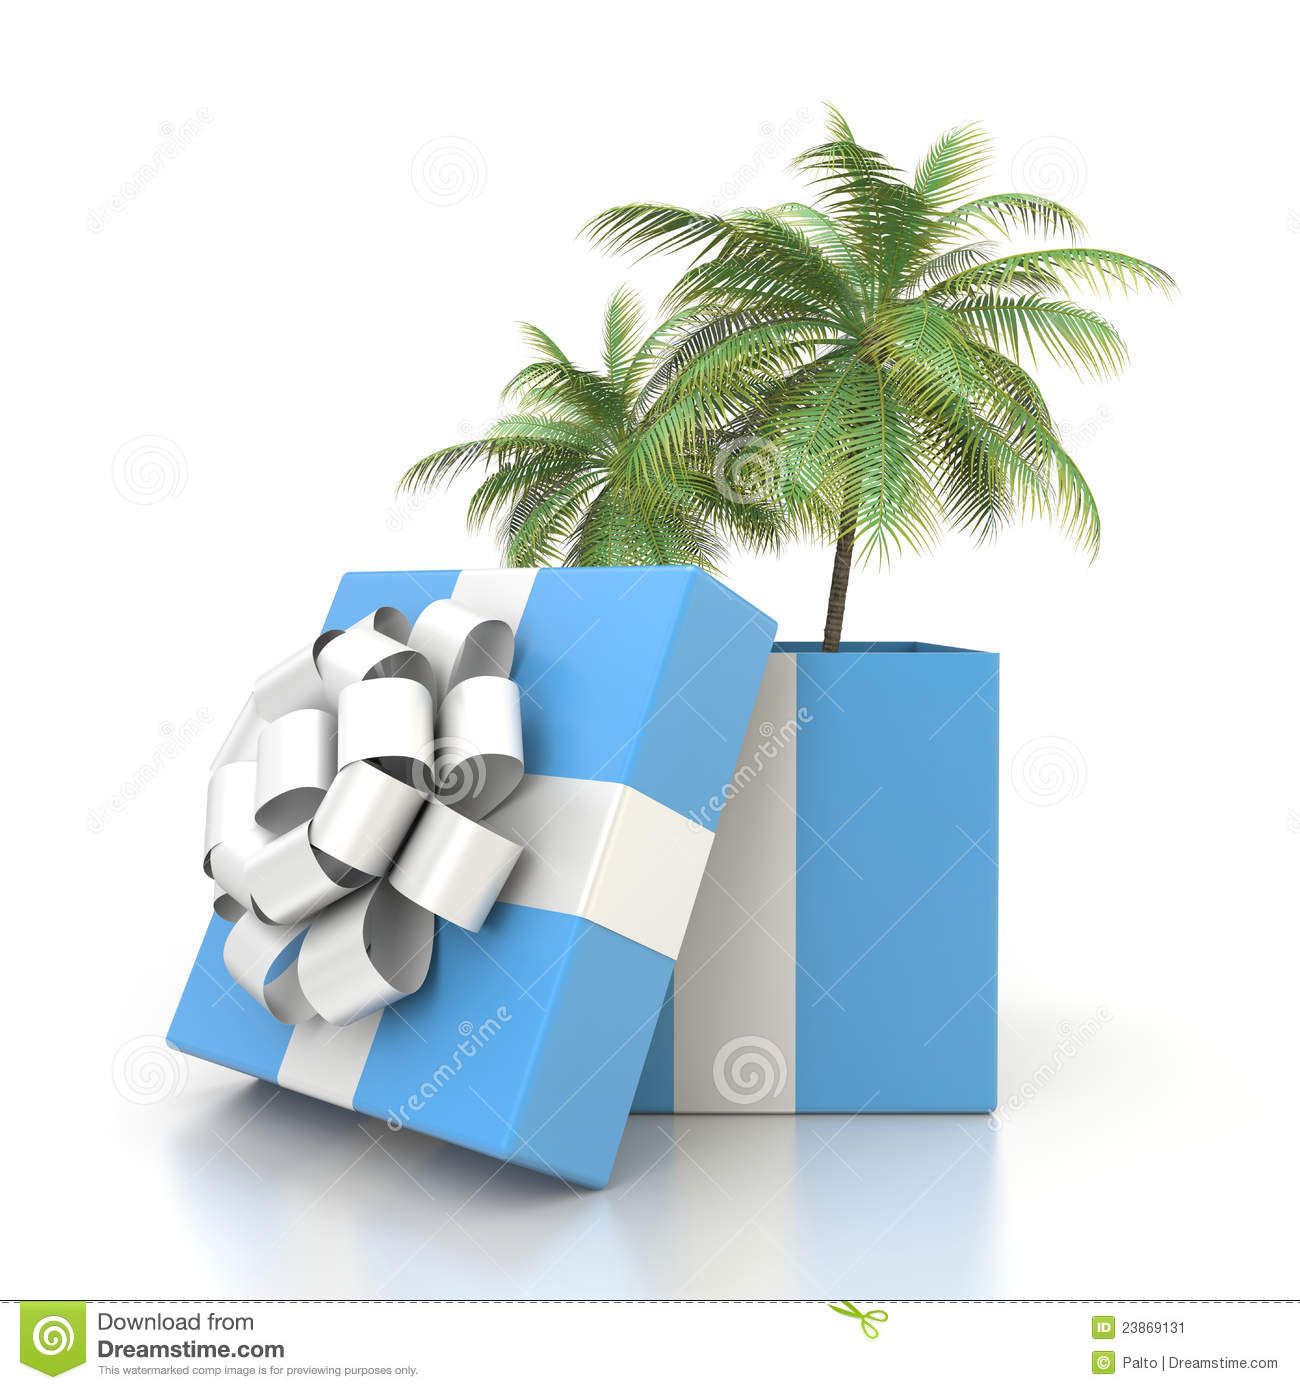 Palm Tree From The Gift Box Stock Image - Image: 23869131